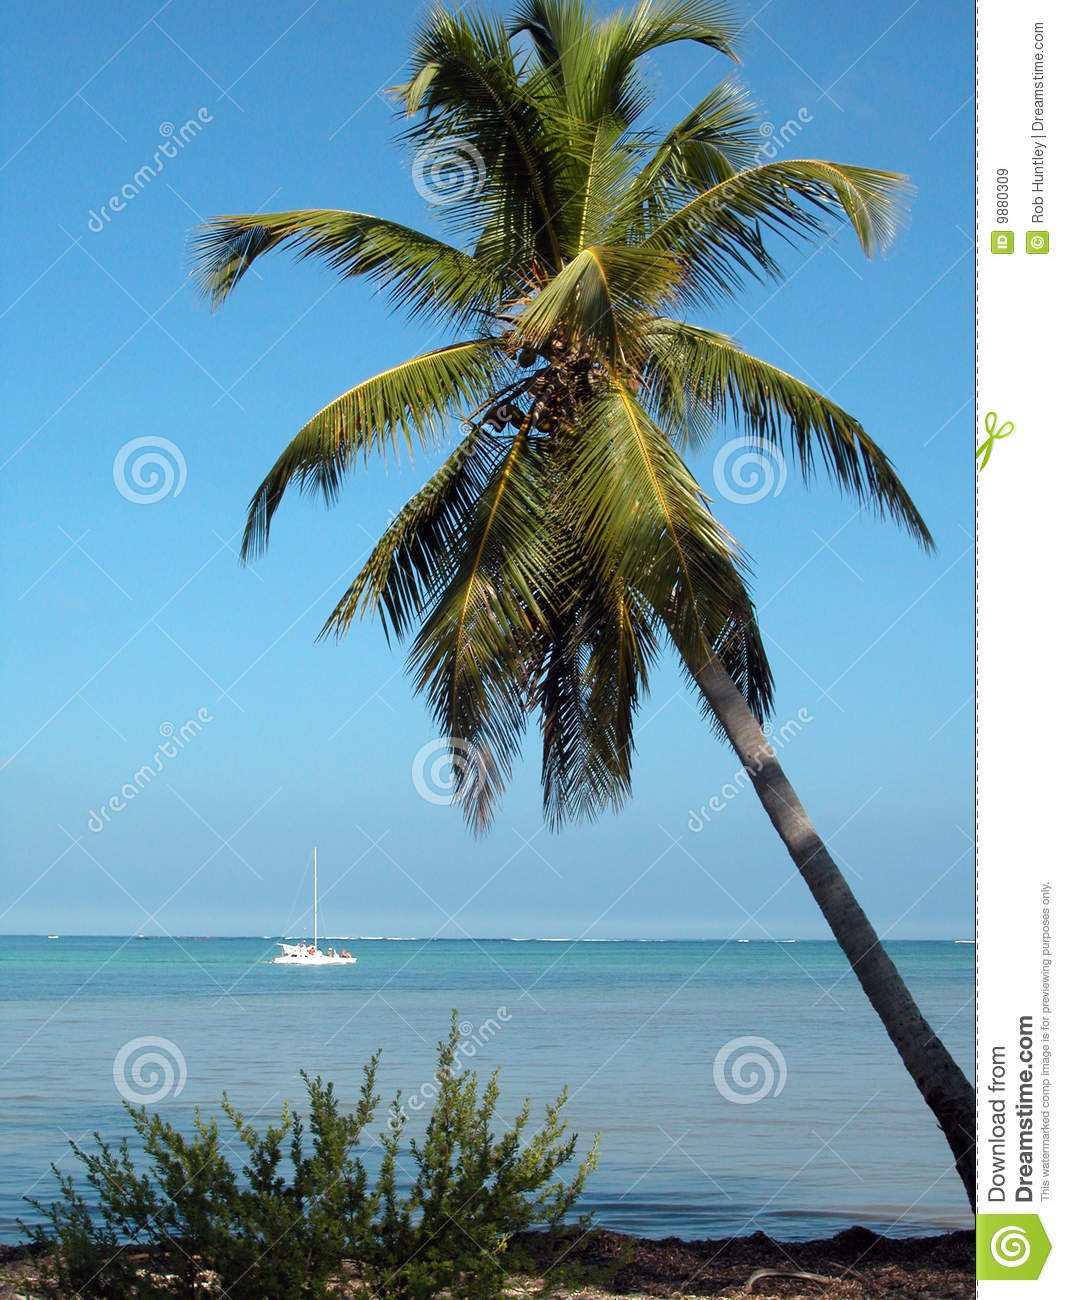 palm trees boat-#26